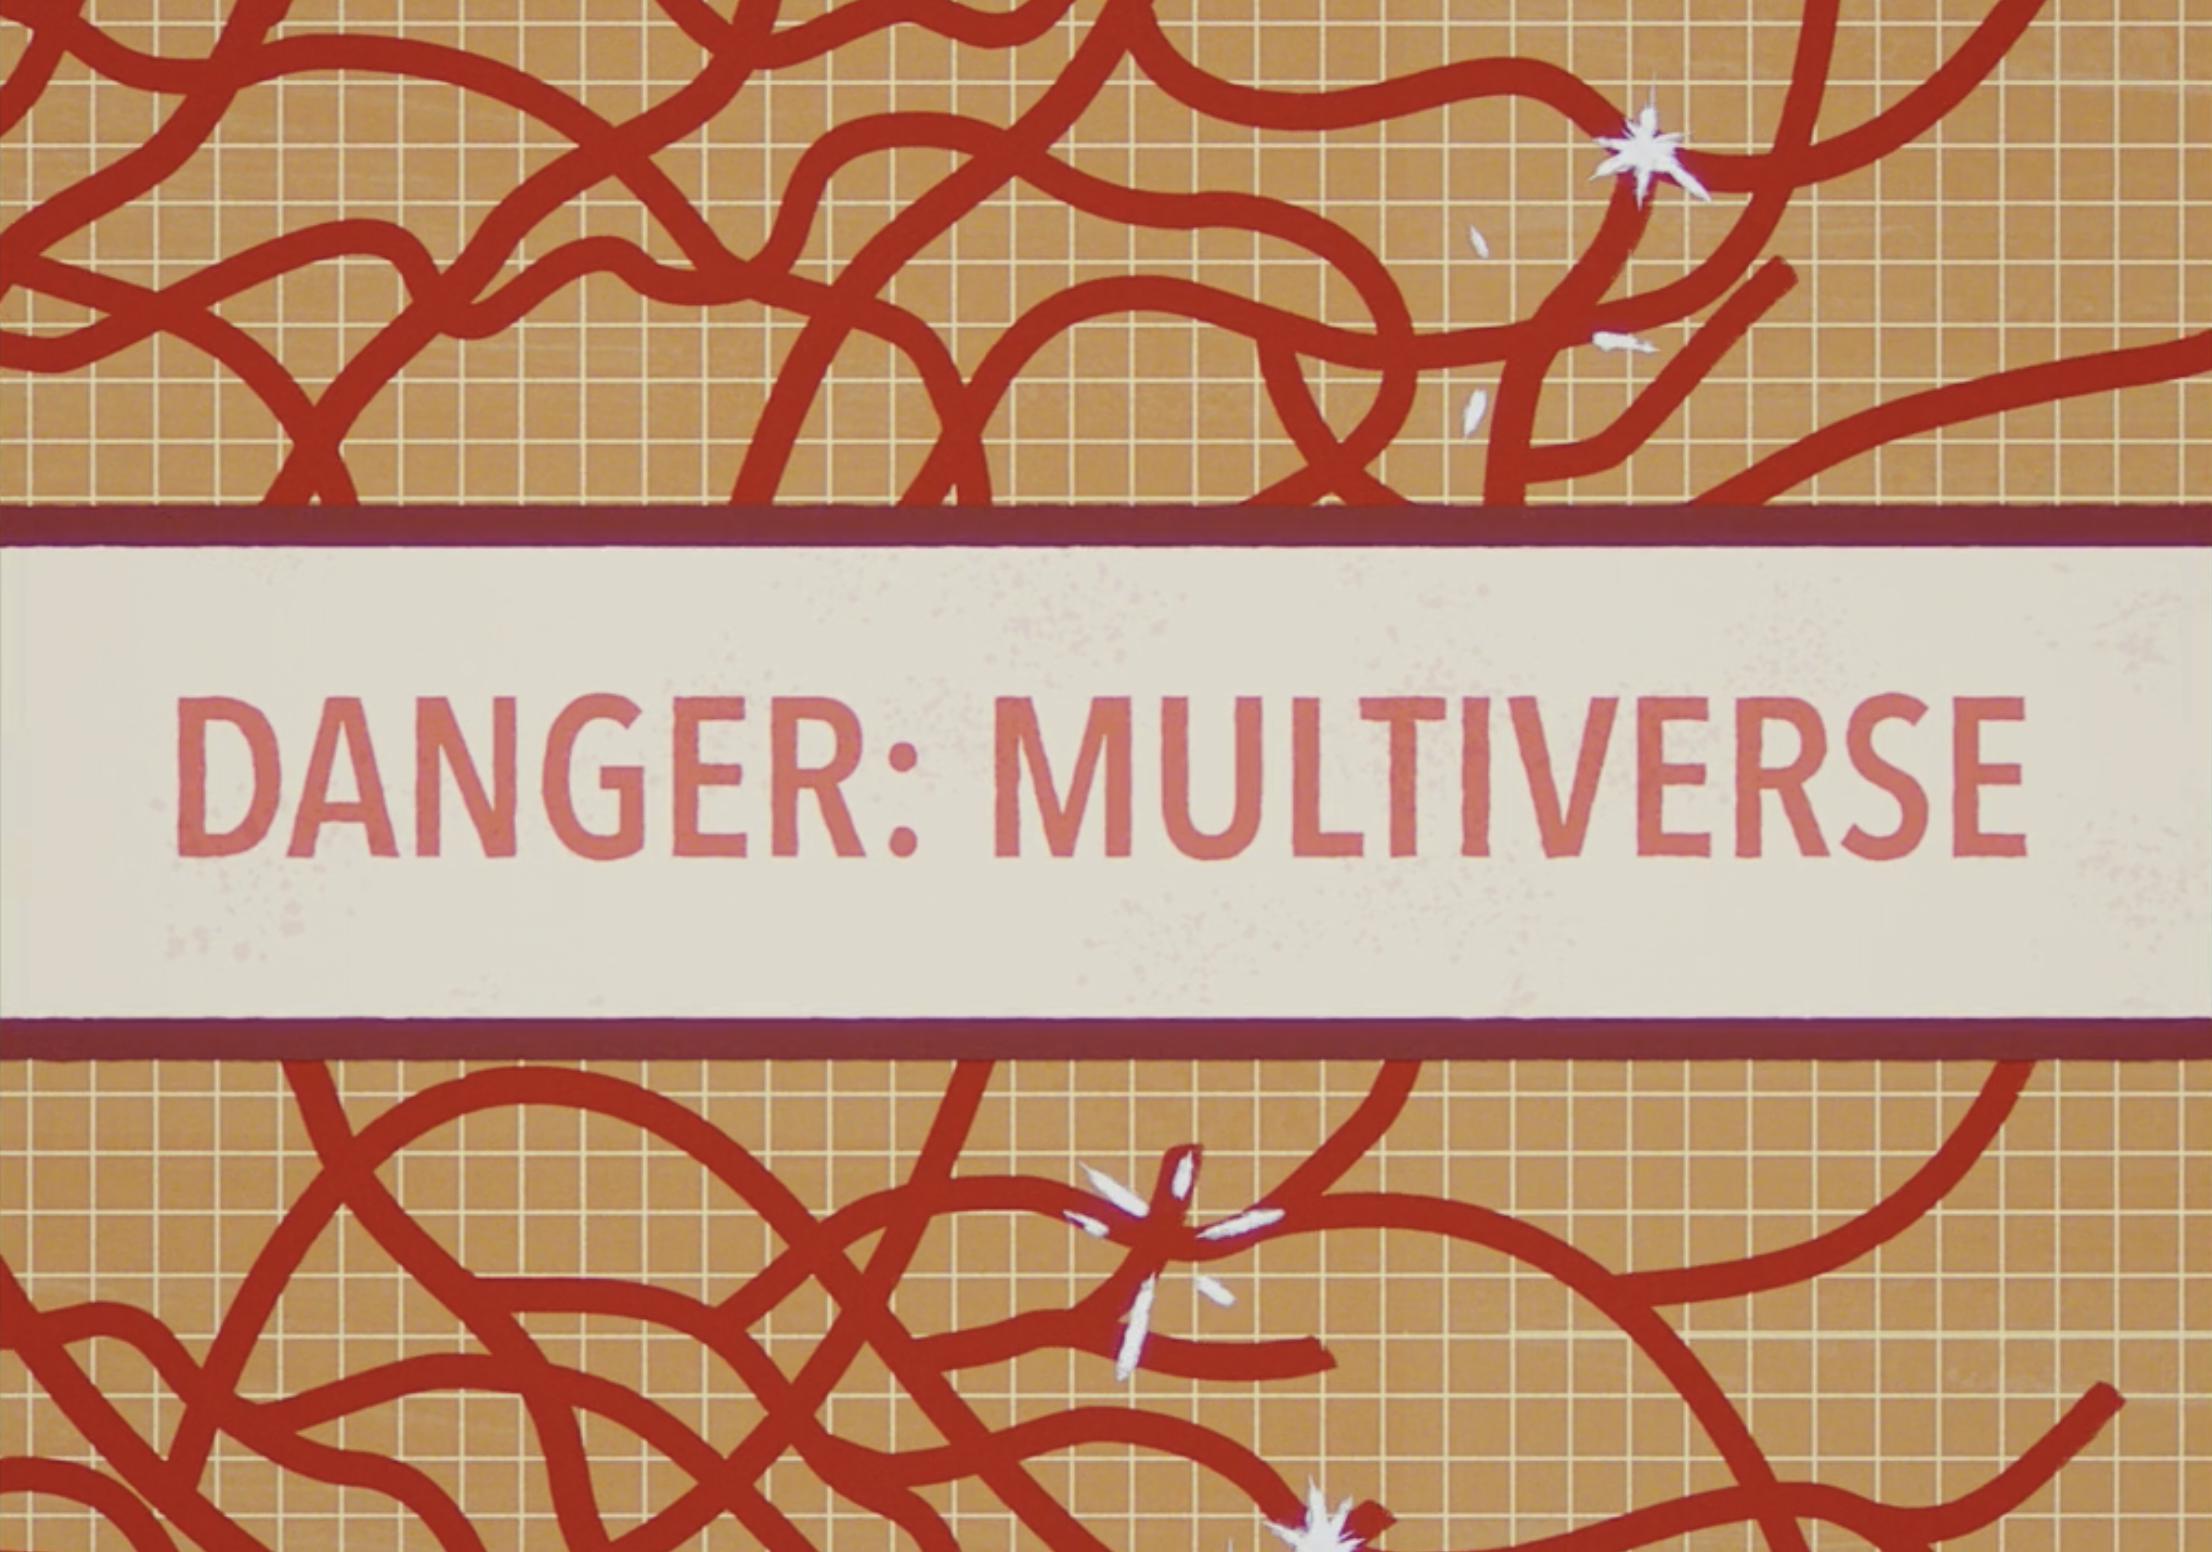 """An animated sign that says """"Danger: Multiverse"""""""